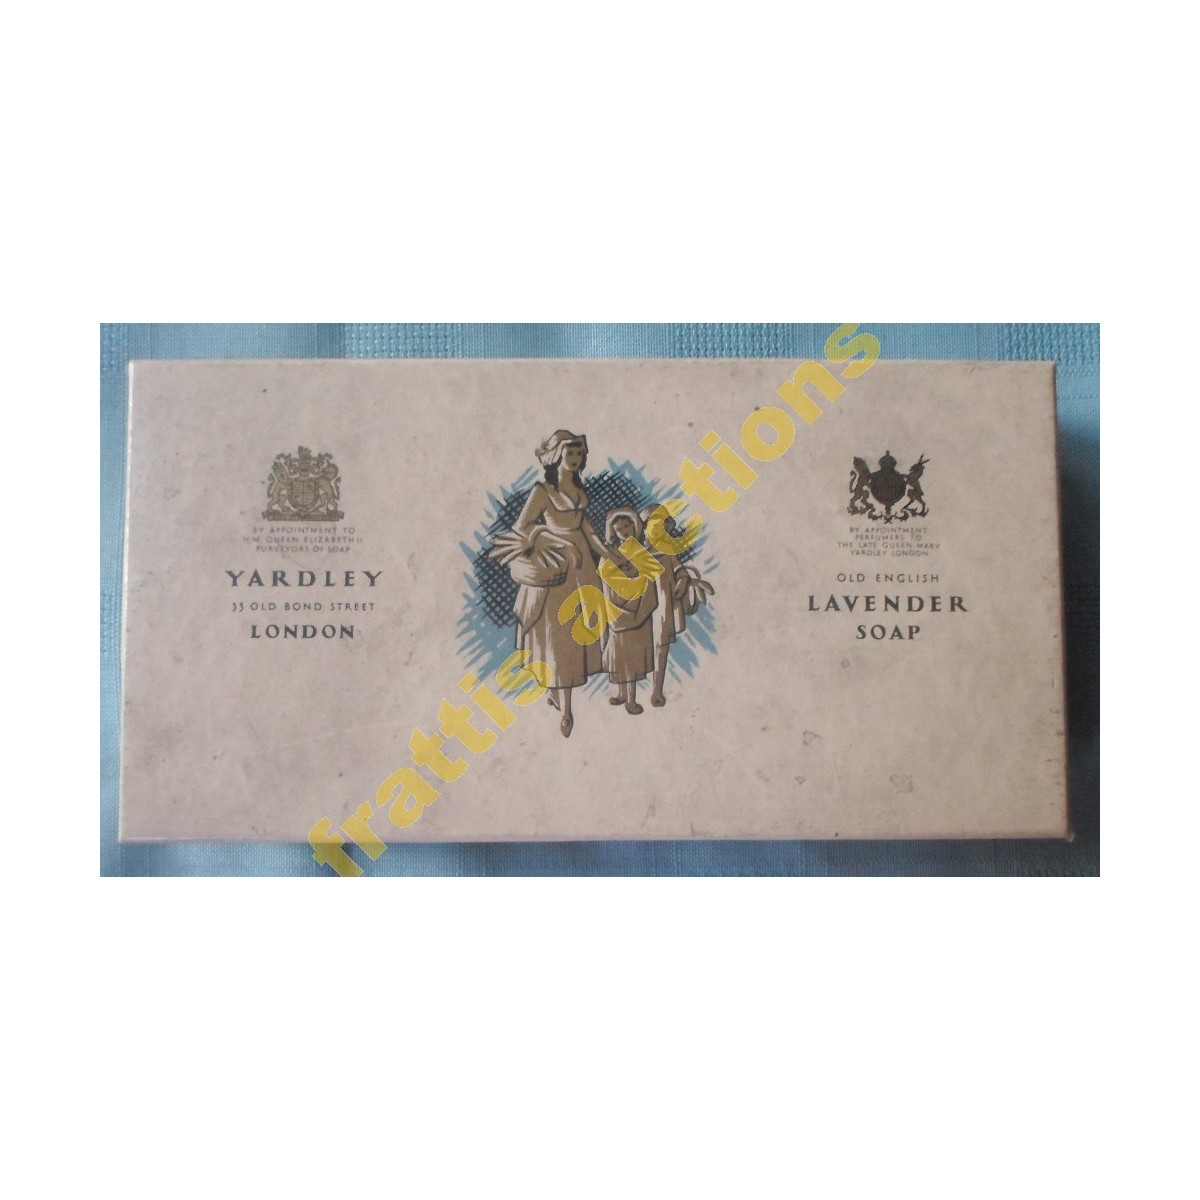 Χάρτινο κουτί Yardley Old English lavender soap.